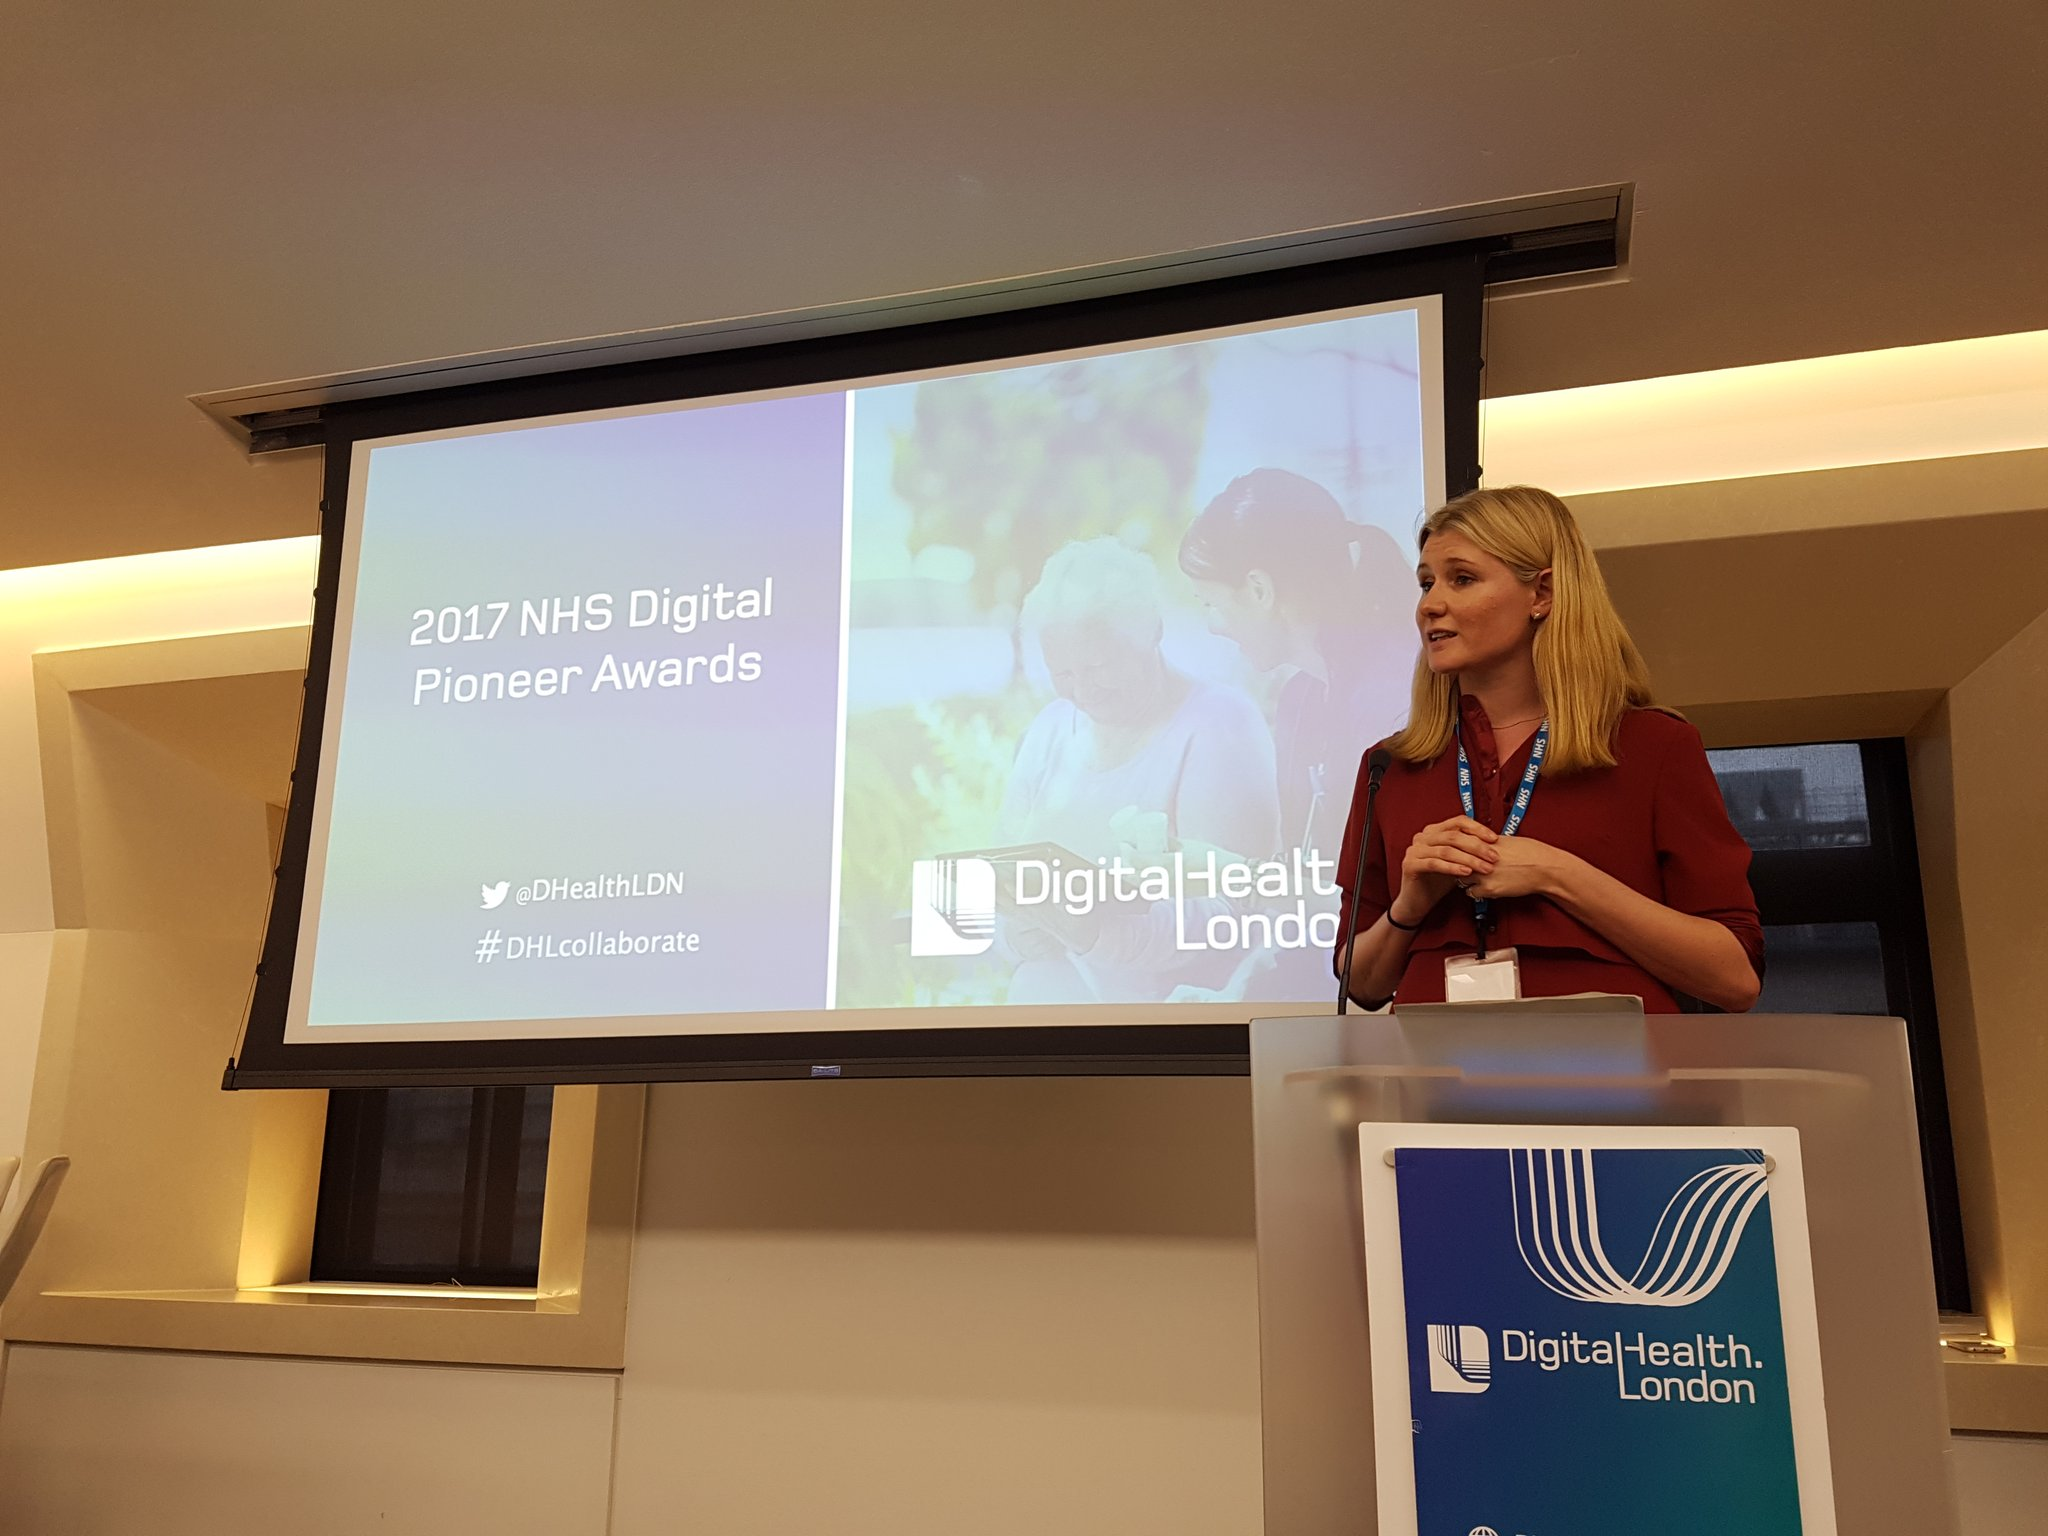 Time for the 2017 NHS Digital Pioneer Award - Juliet Bauer from NHS England #DHLcollaborate https://t.co/o1dRJbfyRL